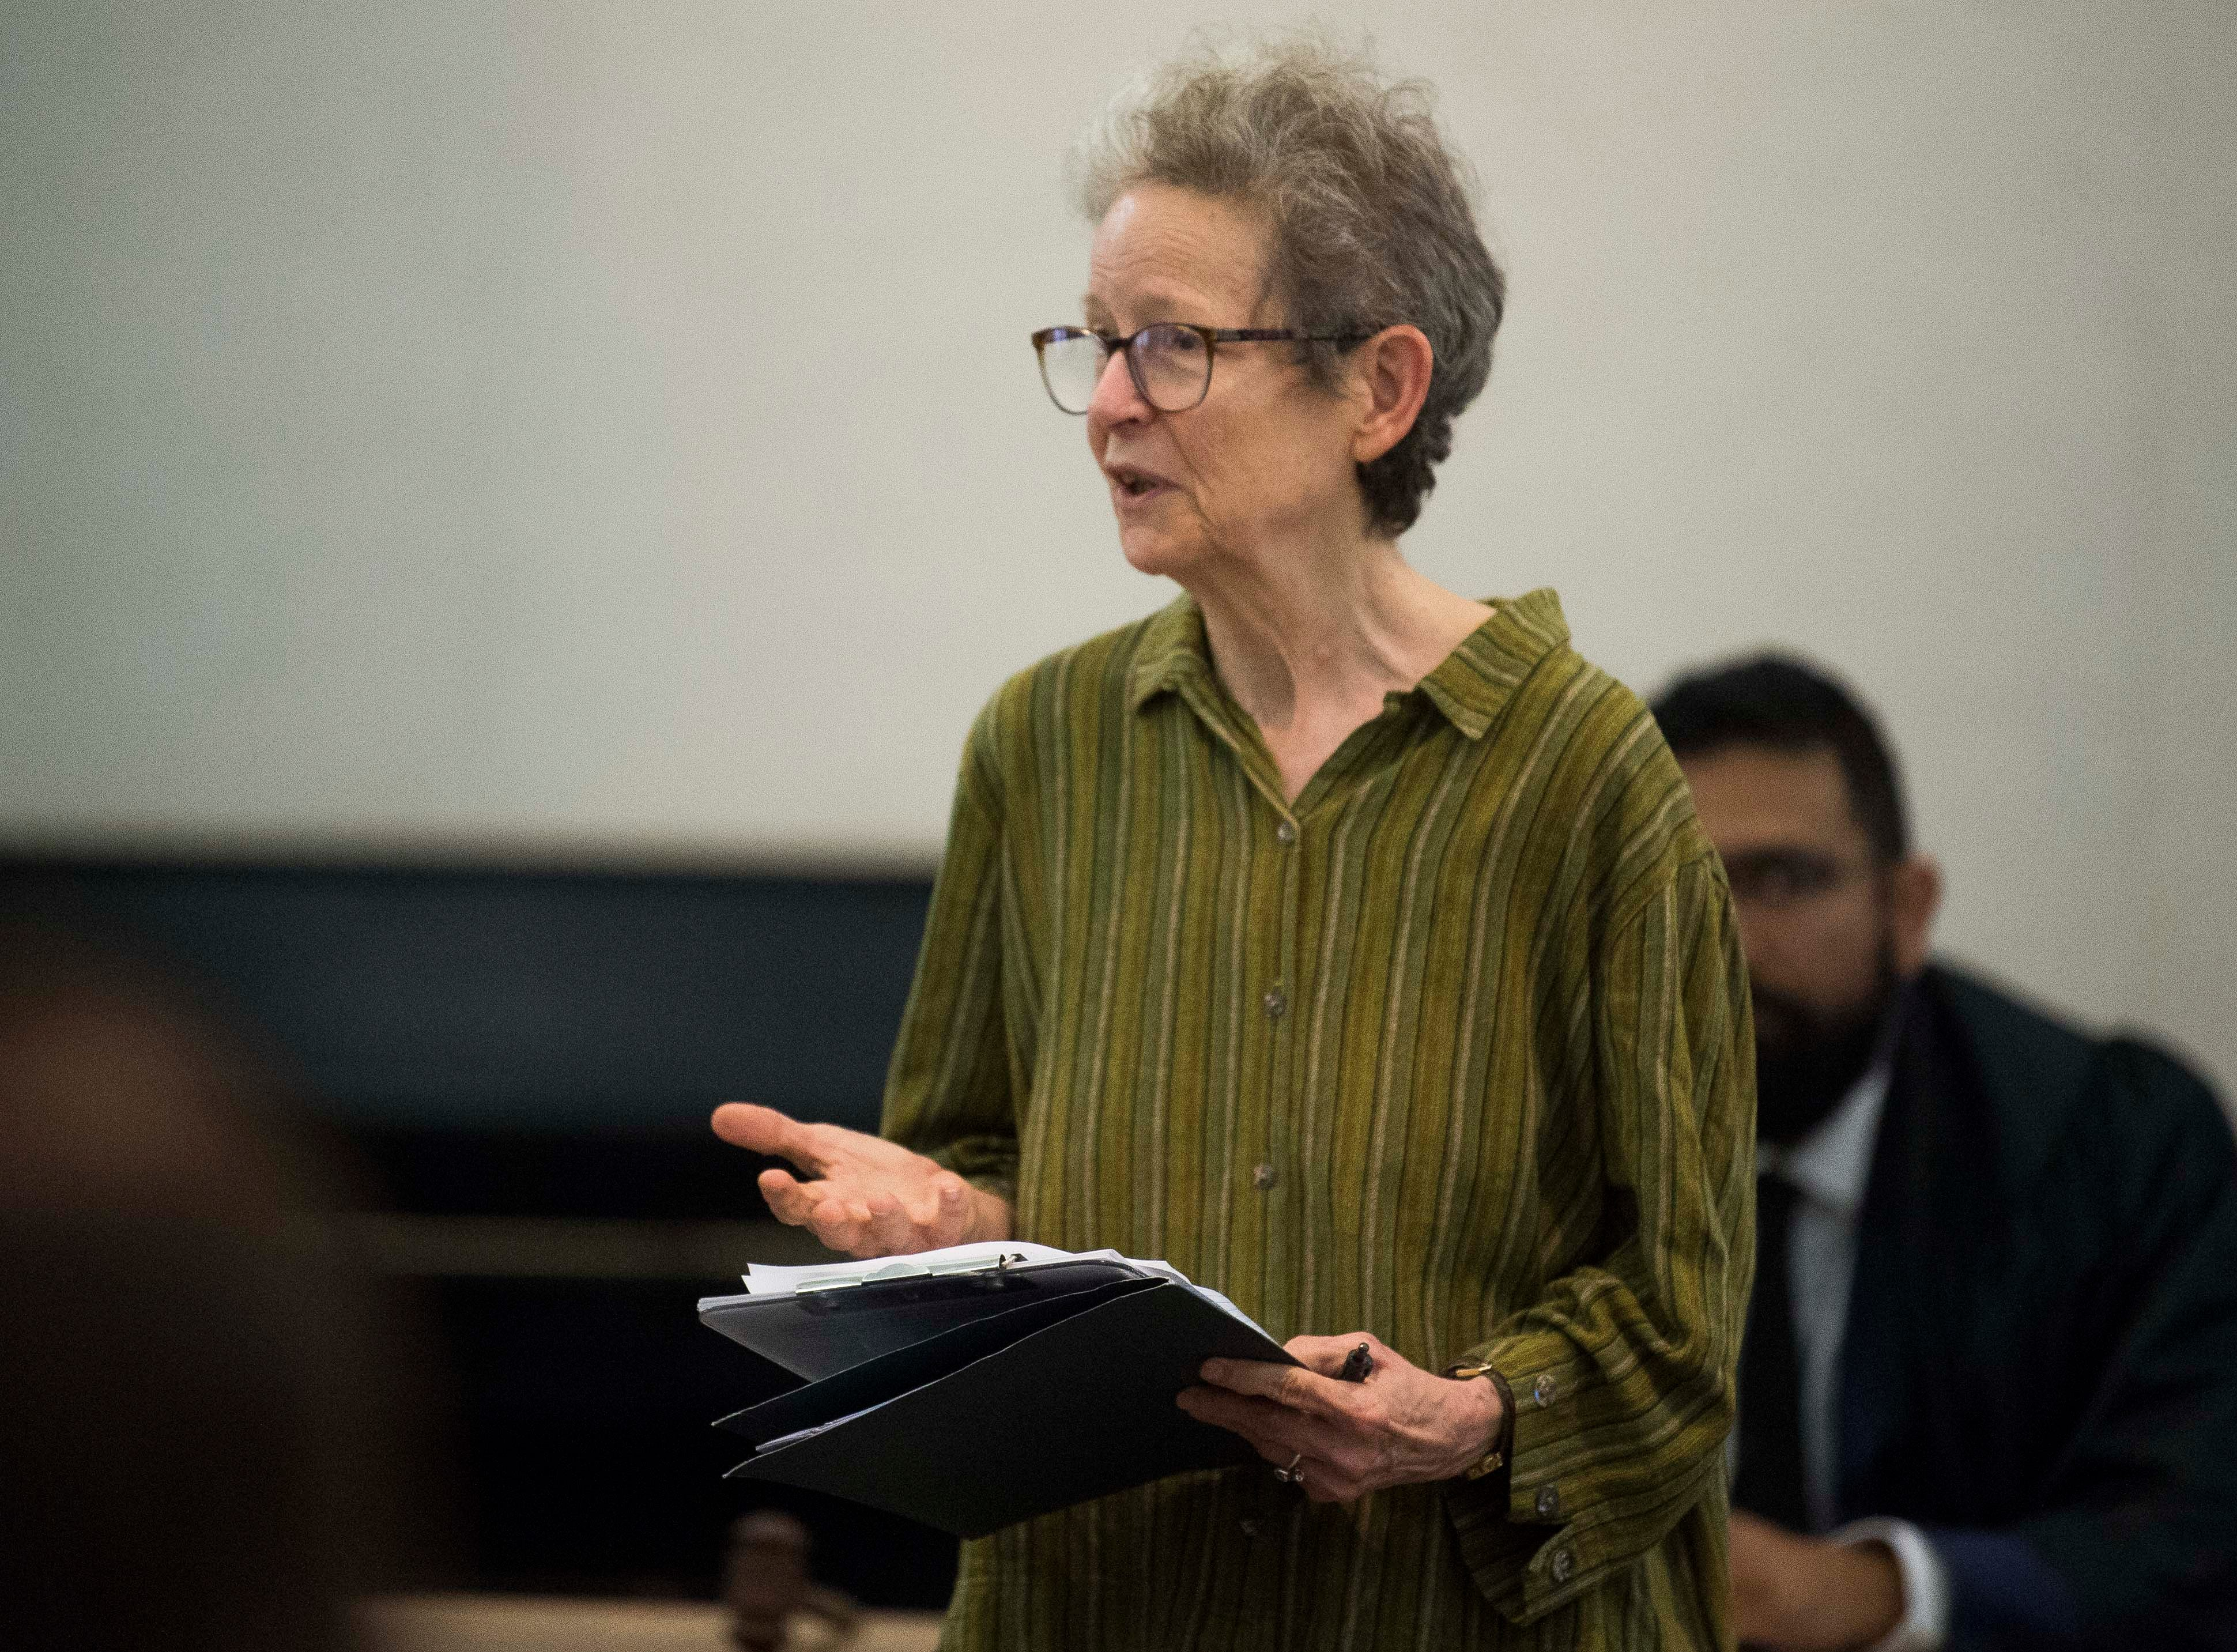 Fran Ansley speaks before a mock trial put on by Allies of Knoxville's Immigrant Neighbors, AKIN, at St. James Episcopal Church of Knoxville in Knoxville, Saturday, May 11, 2019. The court was part of the group's efforts to raise awareness about the negative effects of Knox County's 287(g) program, the only program of its kind in the state, which trains local officers to enforce federal immigration laws.